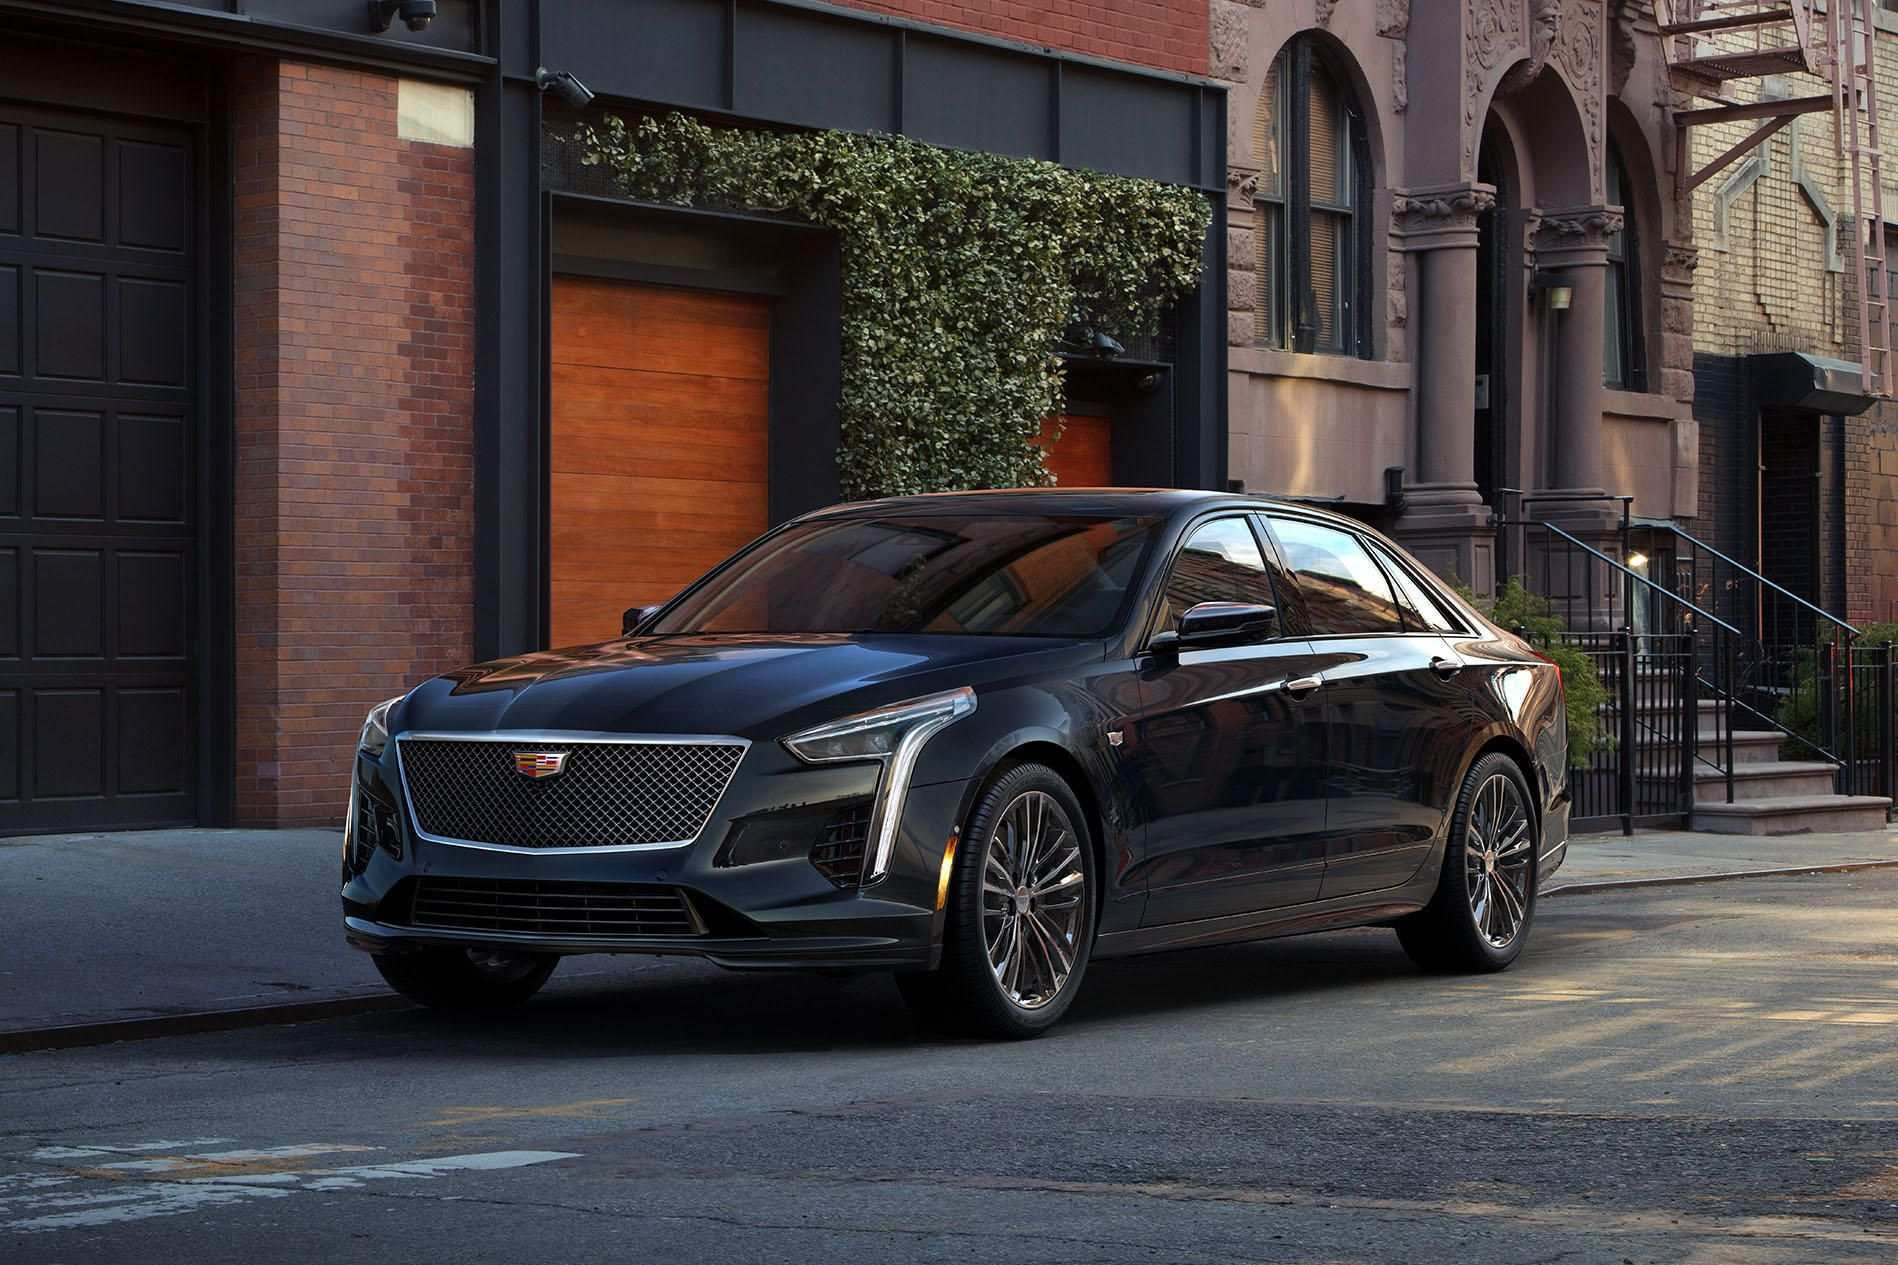 72 New 2019 Cadillac Twin Turbo V8 History by 2019 Cadillac Twin Turbo V8